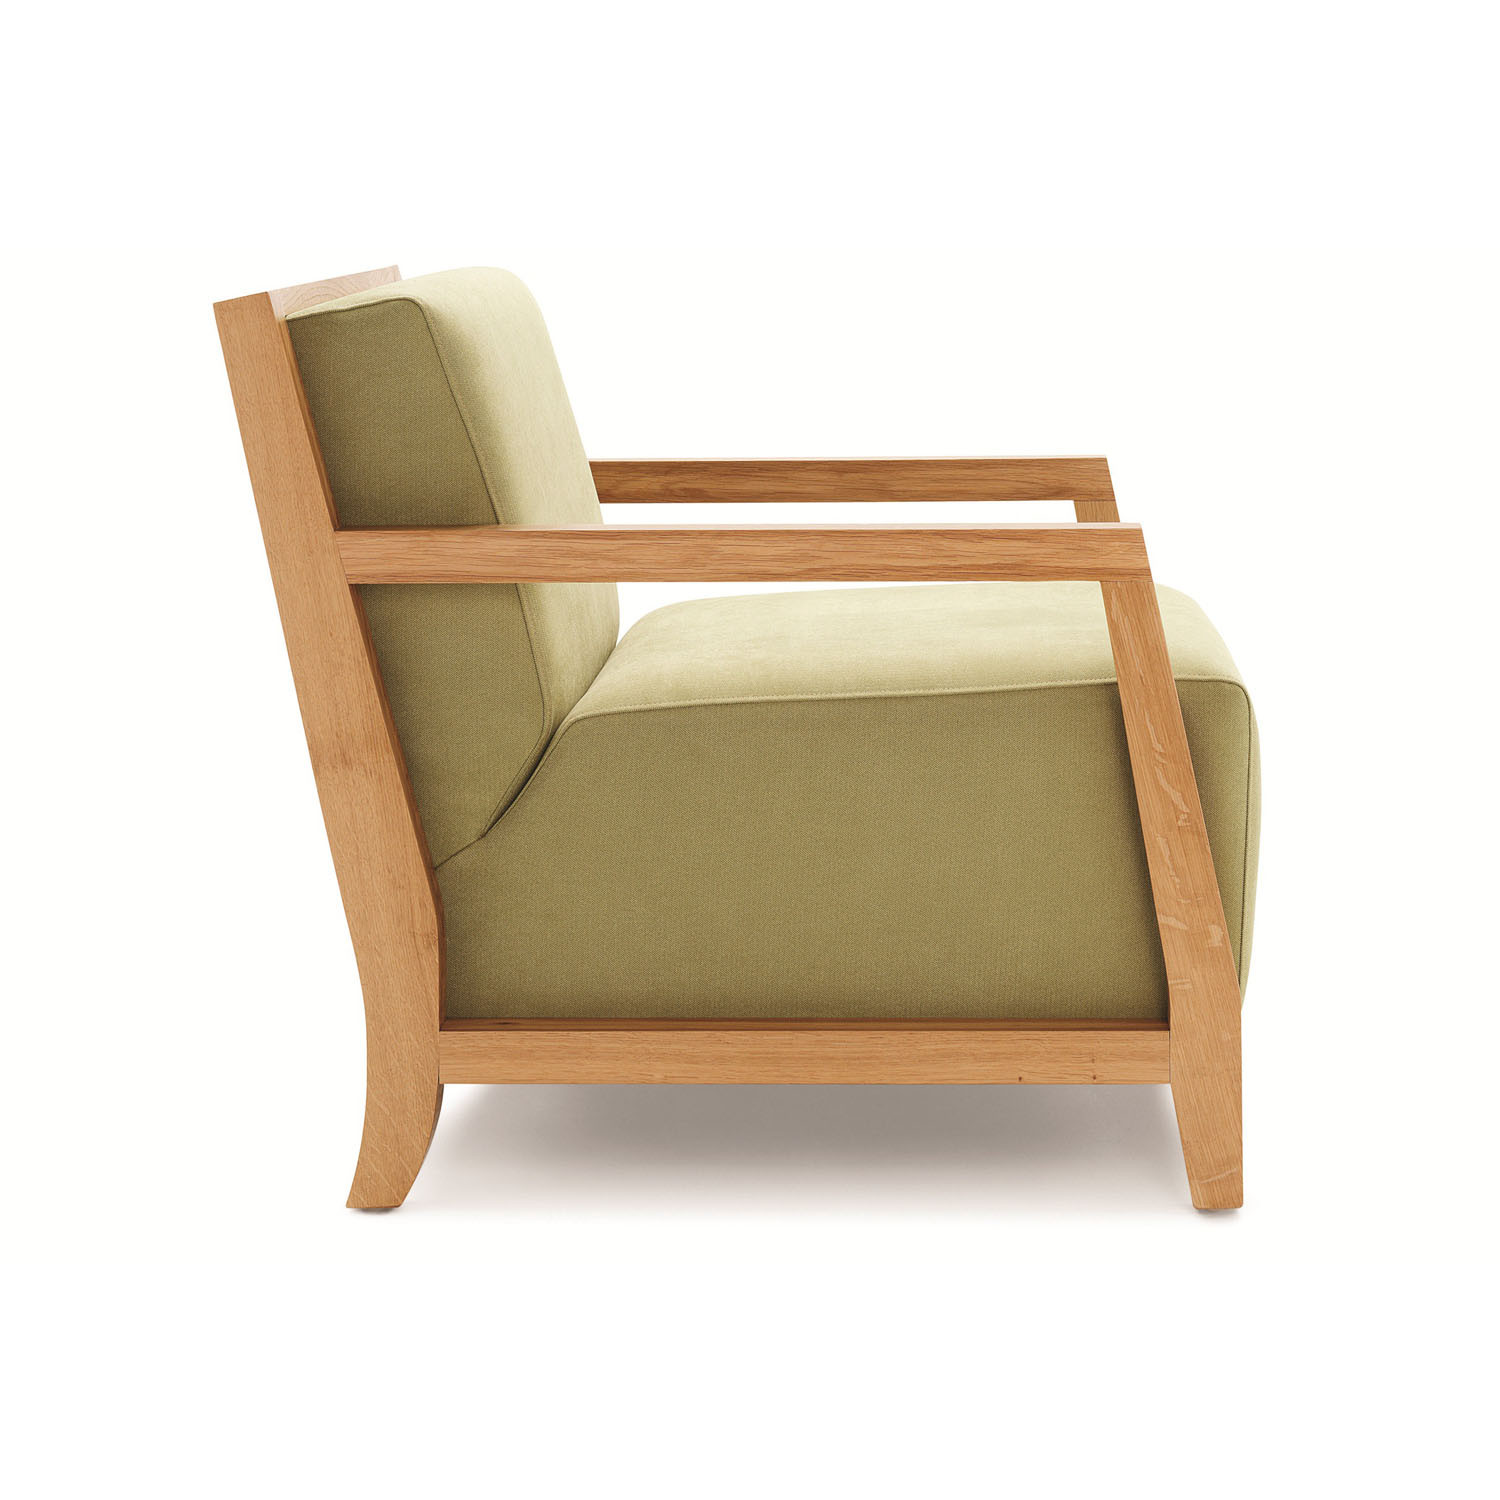 Edgar Armchair & Sofa from Lyndon Design